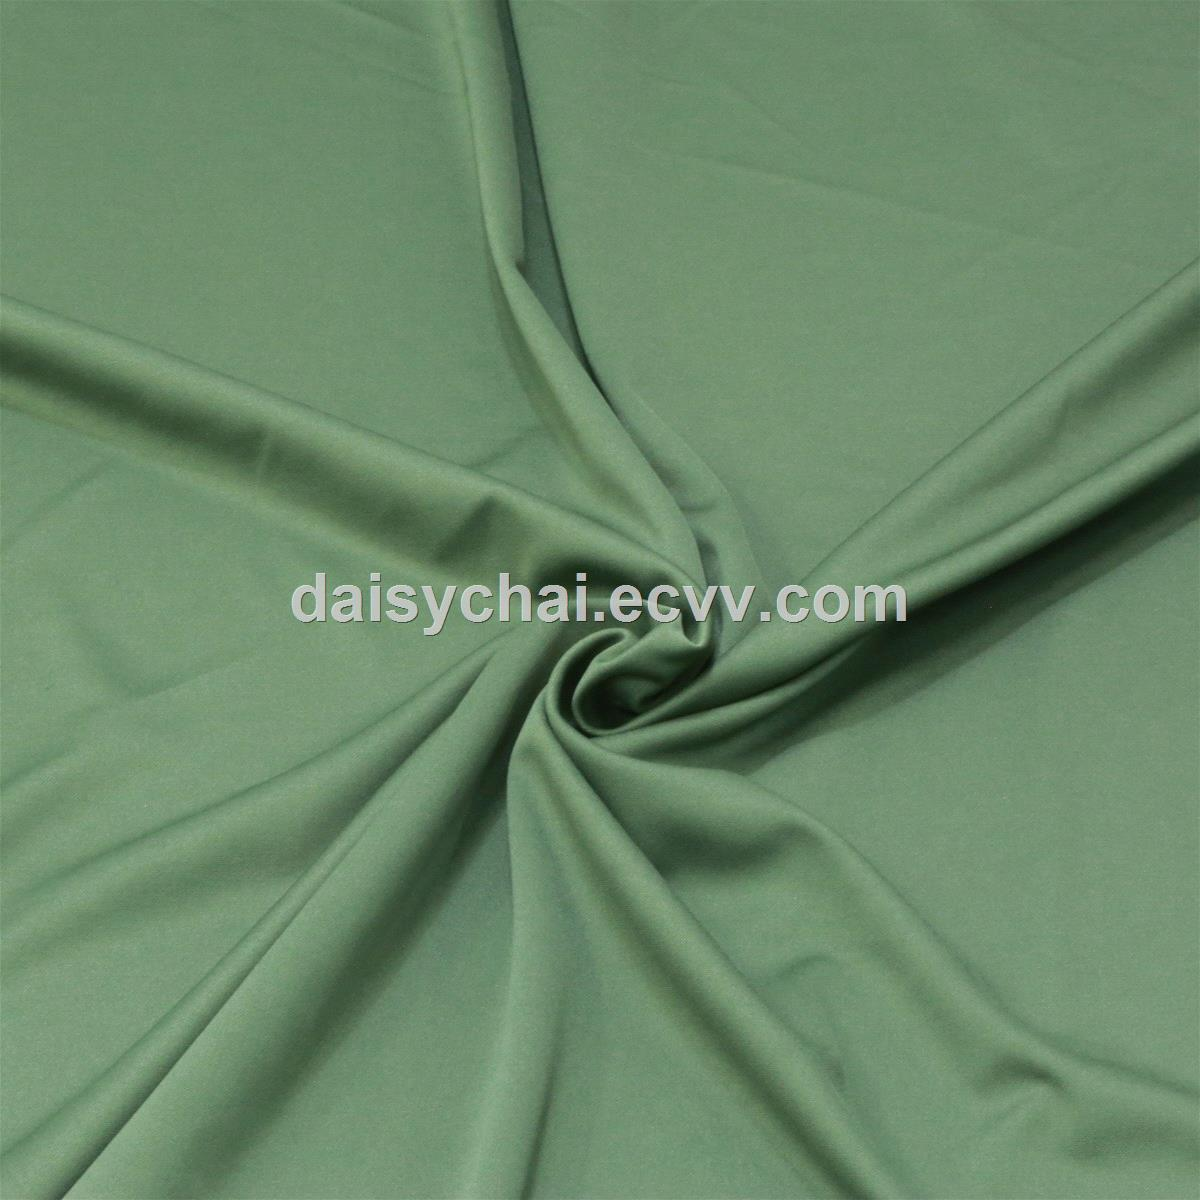 Original Ironing Fabric Cover Used for Table Ironing & Steam Pressing Machine